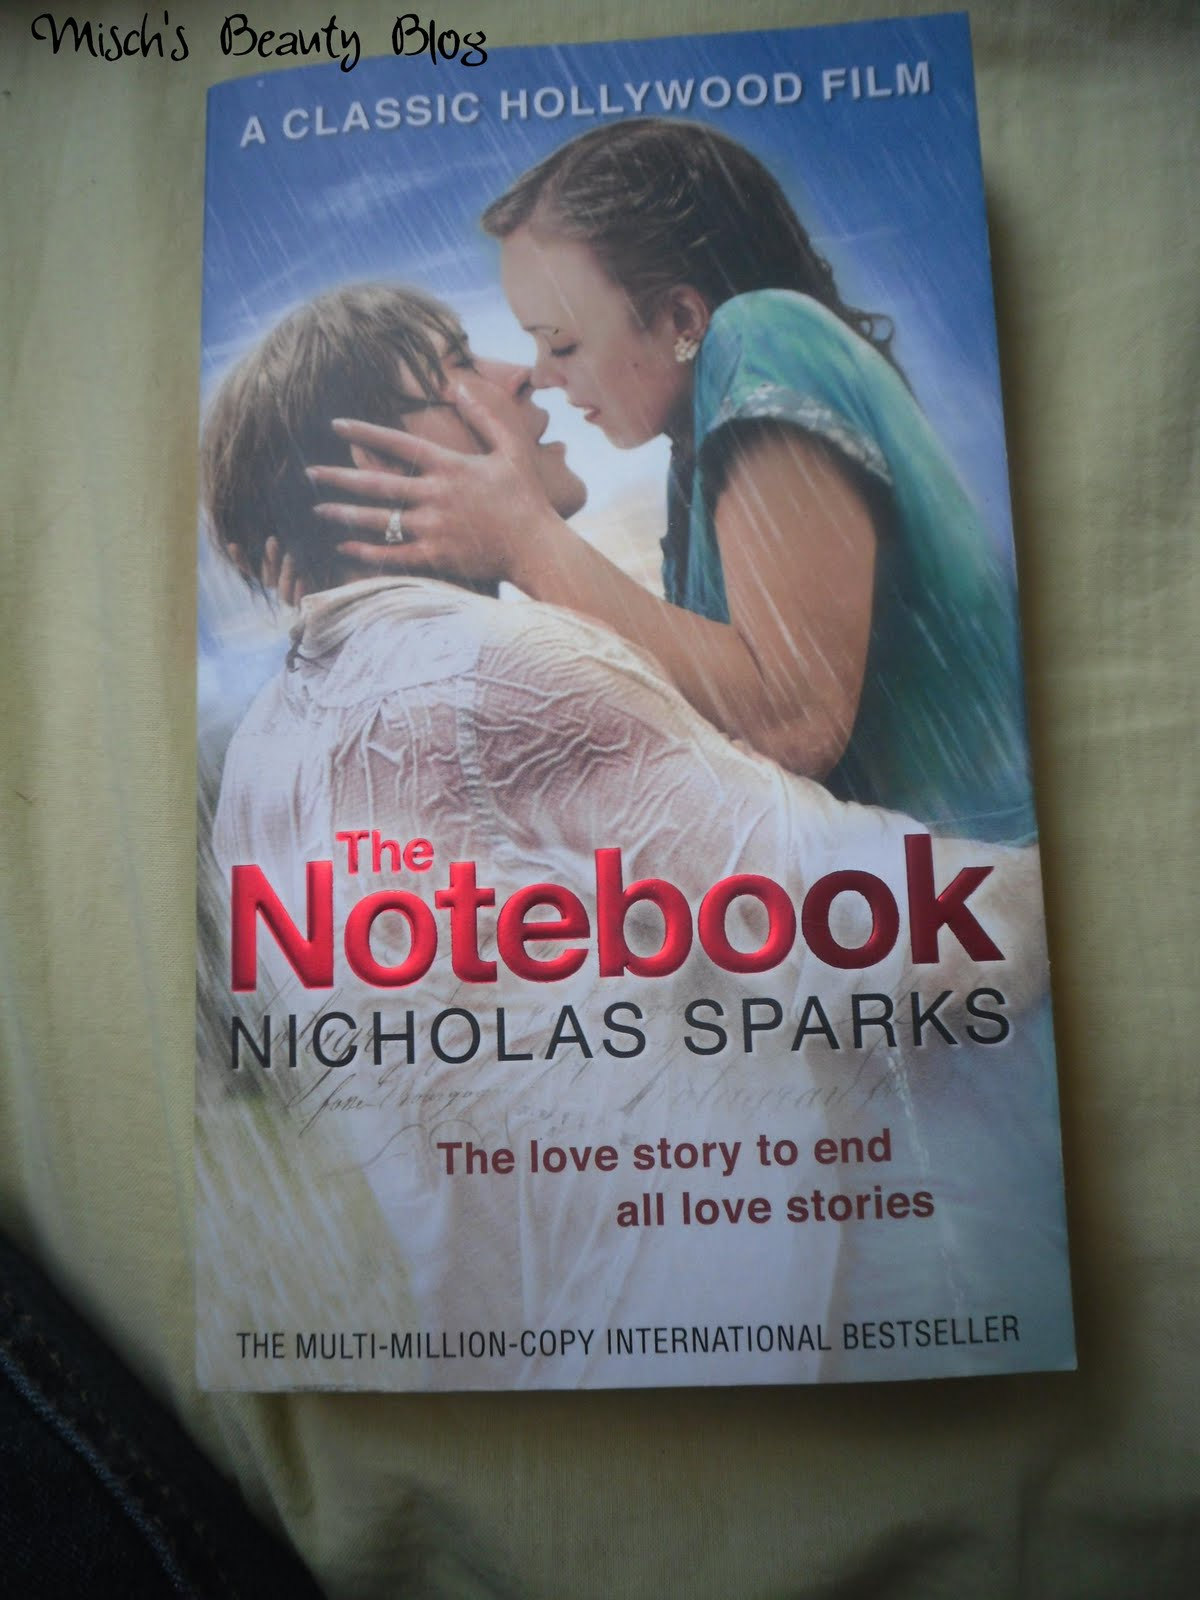 book report on the notebook by nicholas sparks Read safe haven by nicholas sparks from the story book reviews by invisiblylonely with 4,097 reads literature, opinion, review book title: safe haven aut.